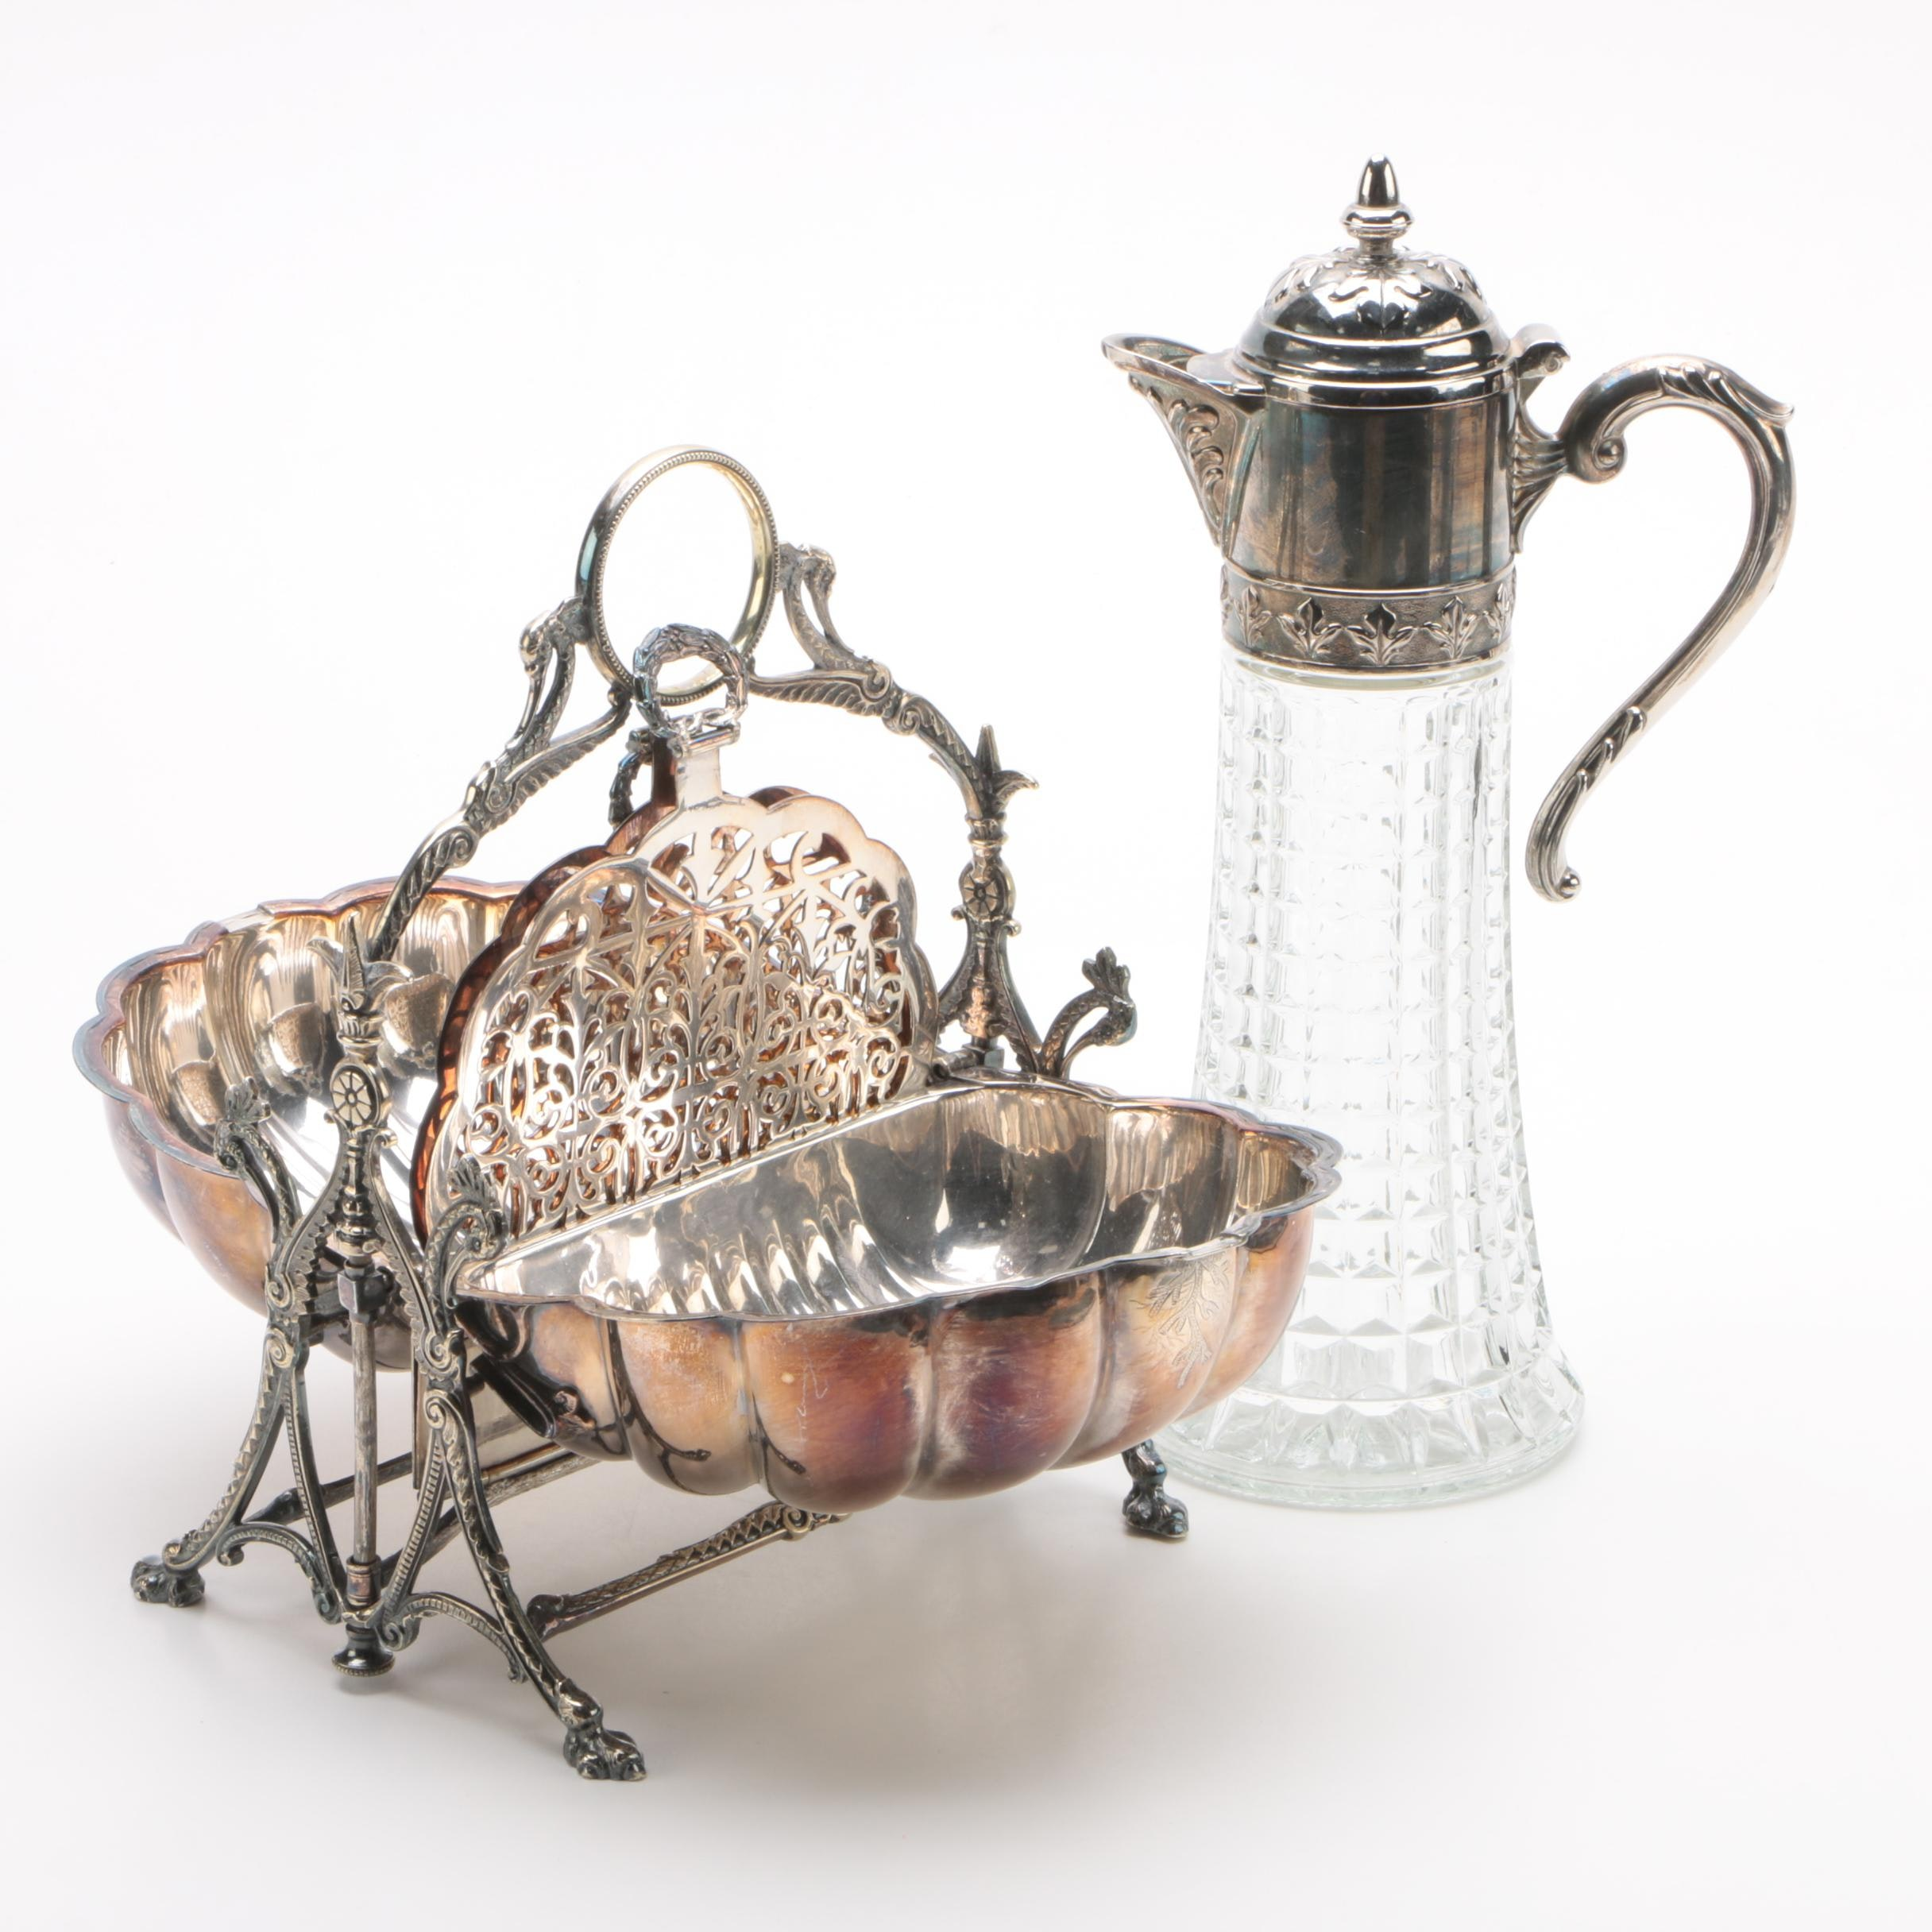 1877 Fenton Brother English Silver Plate Bun Warmer with Claret Wine Decanter